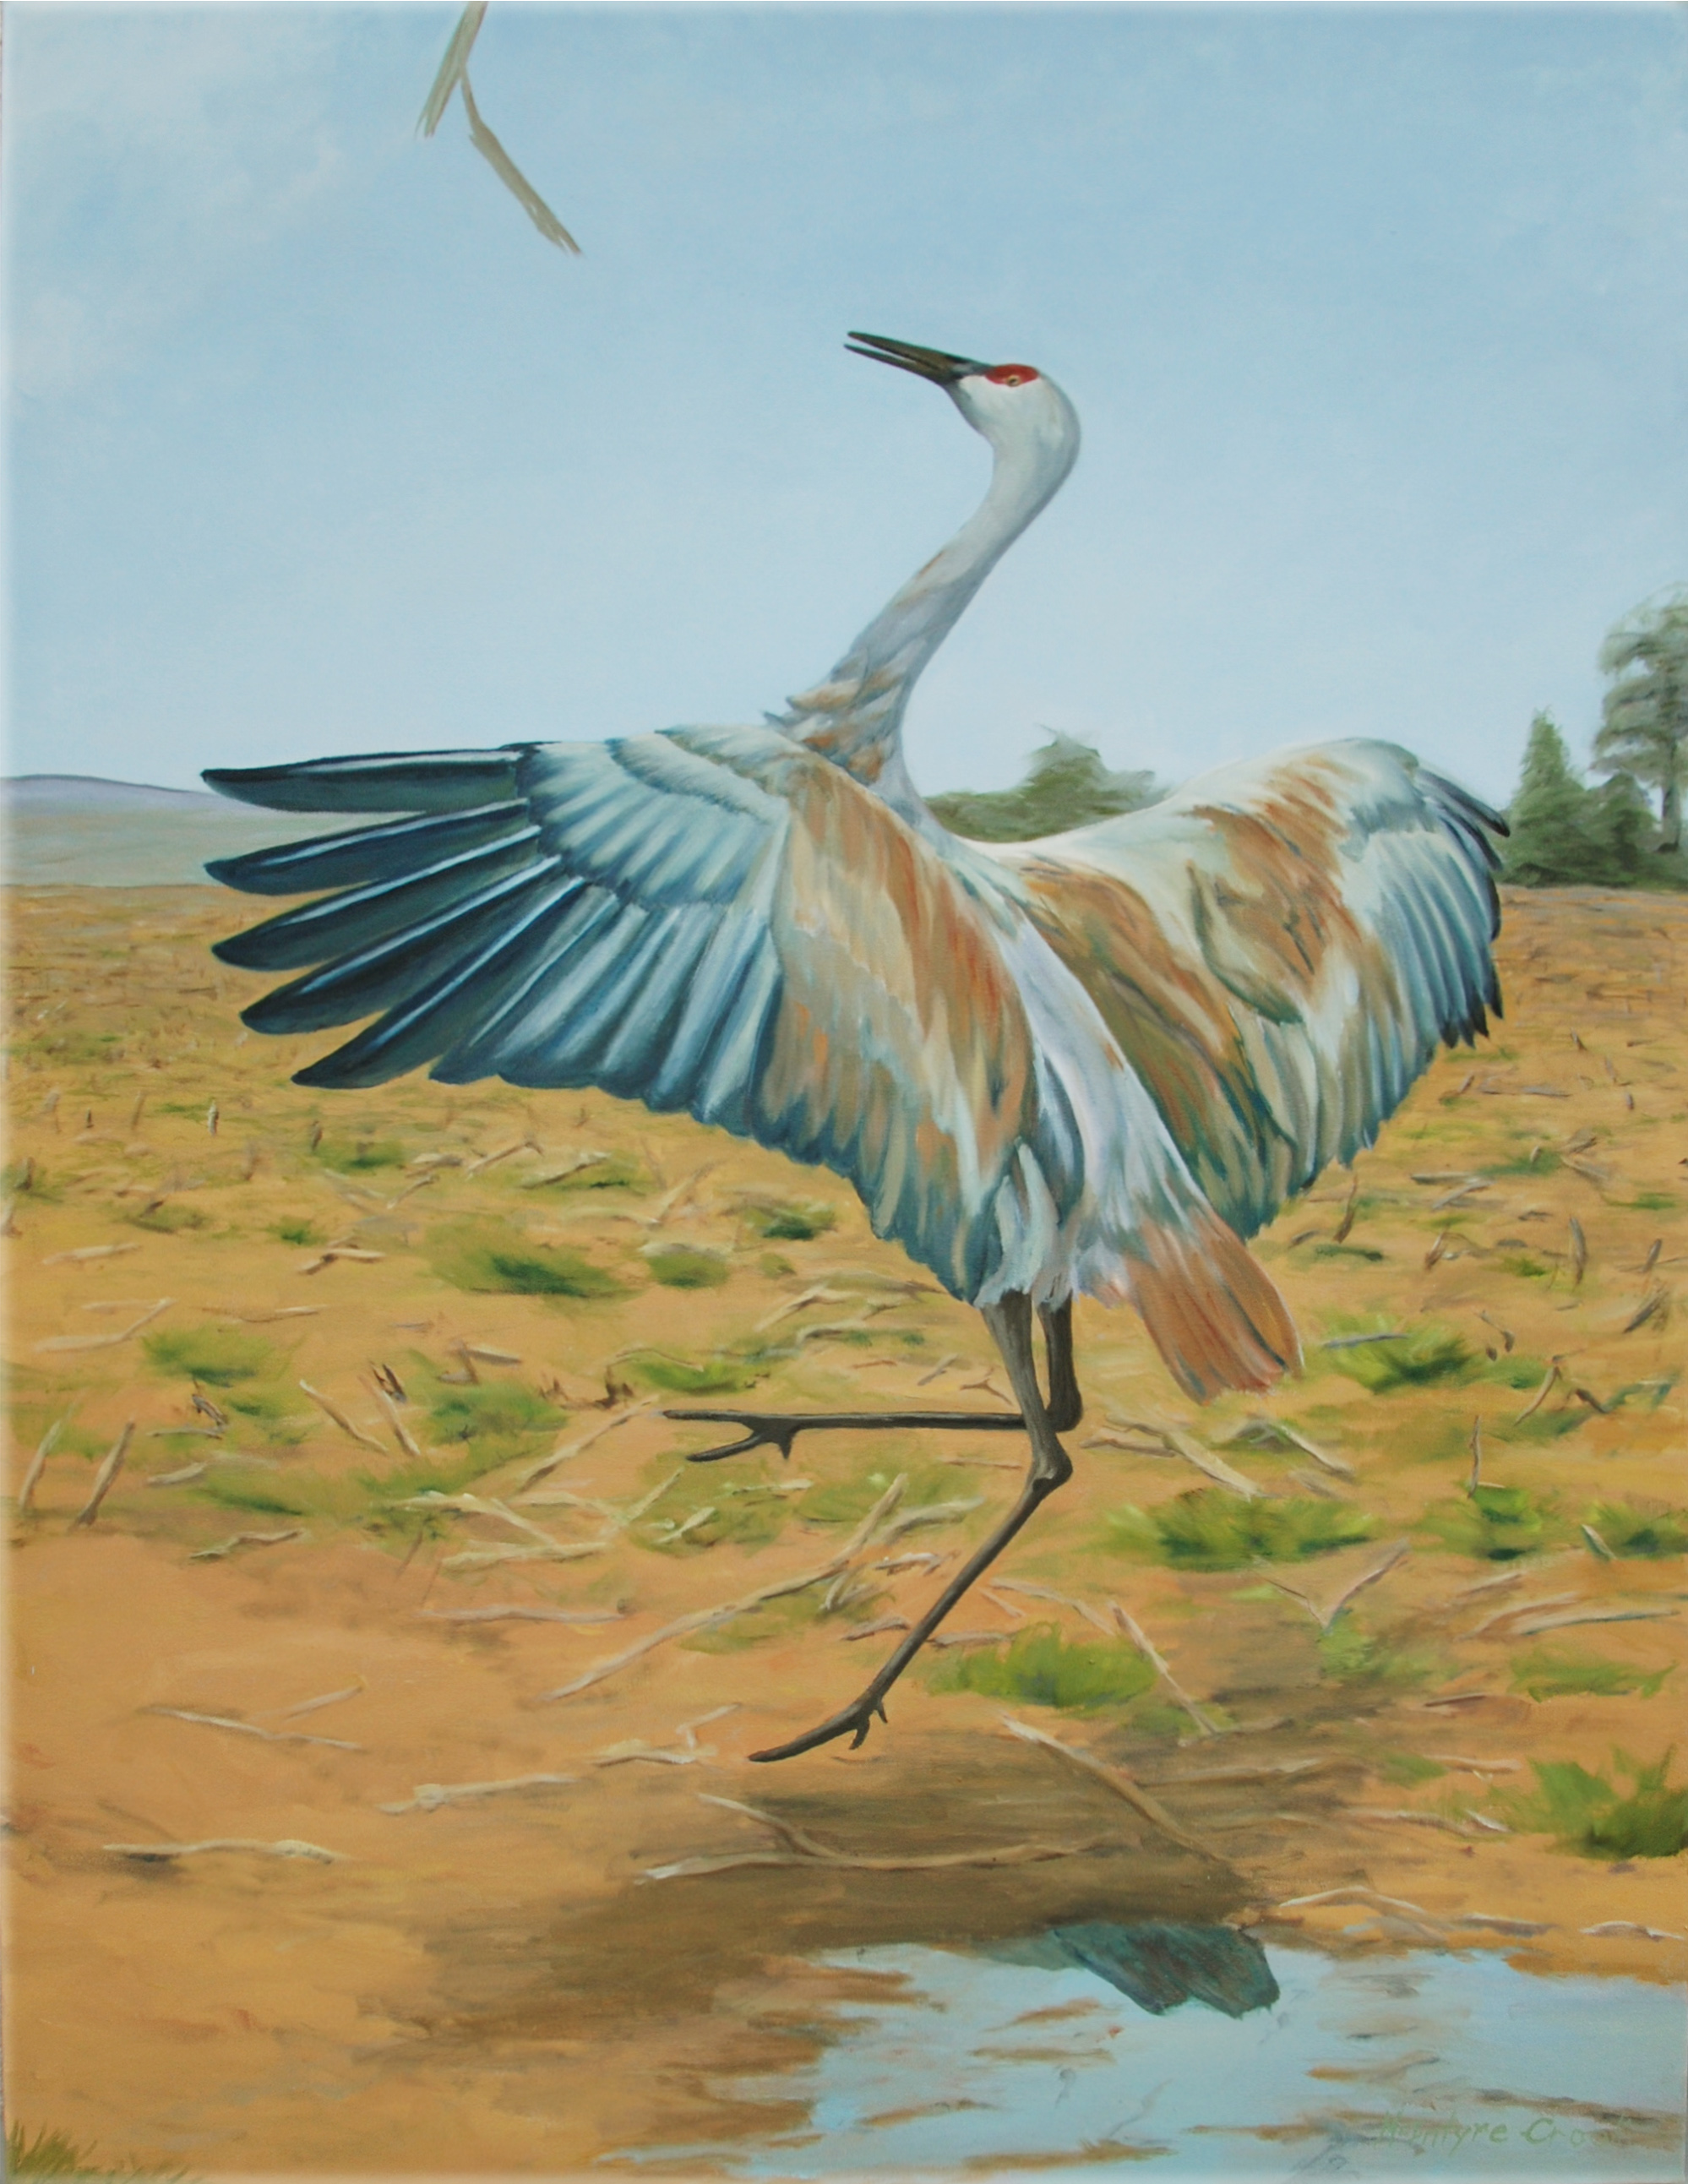 Sandhill Tossing Stick  oil on canvas; 48 x 36; 2014  $800.00  Sandhill Cranes can be quite playful. They really do toss sticks.